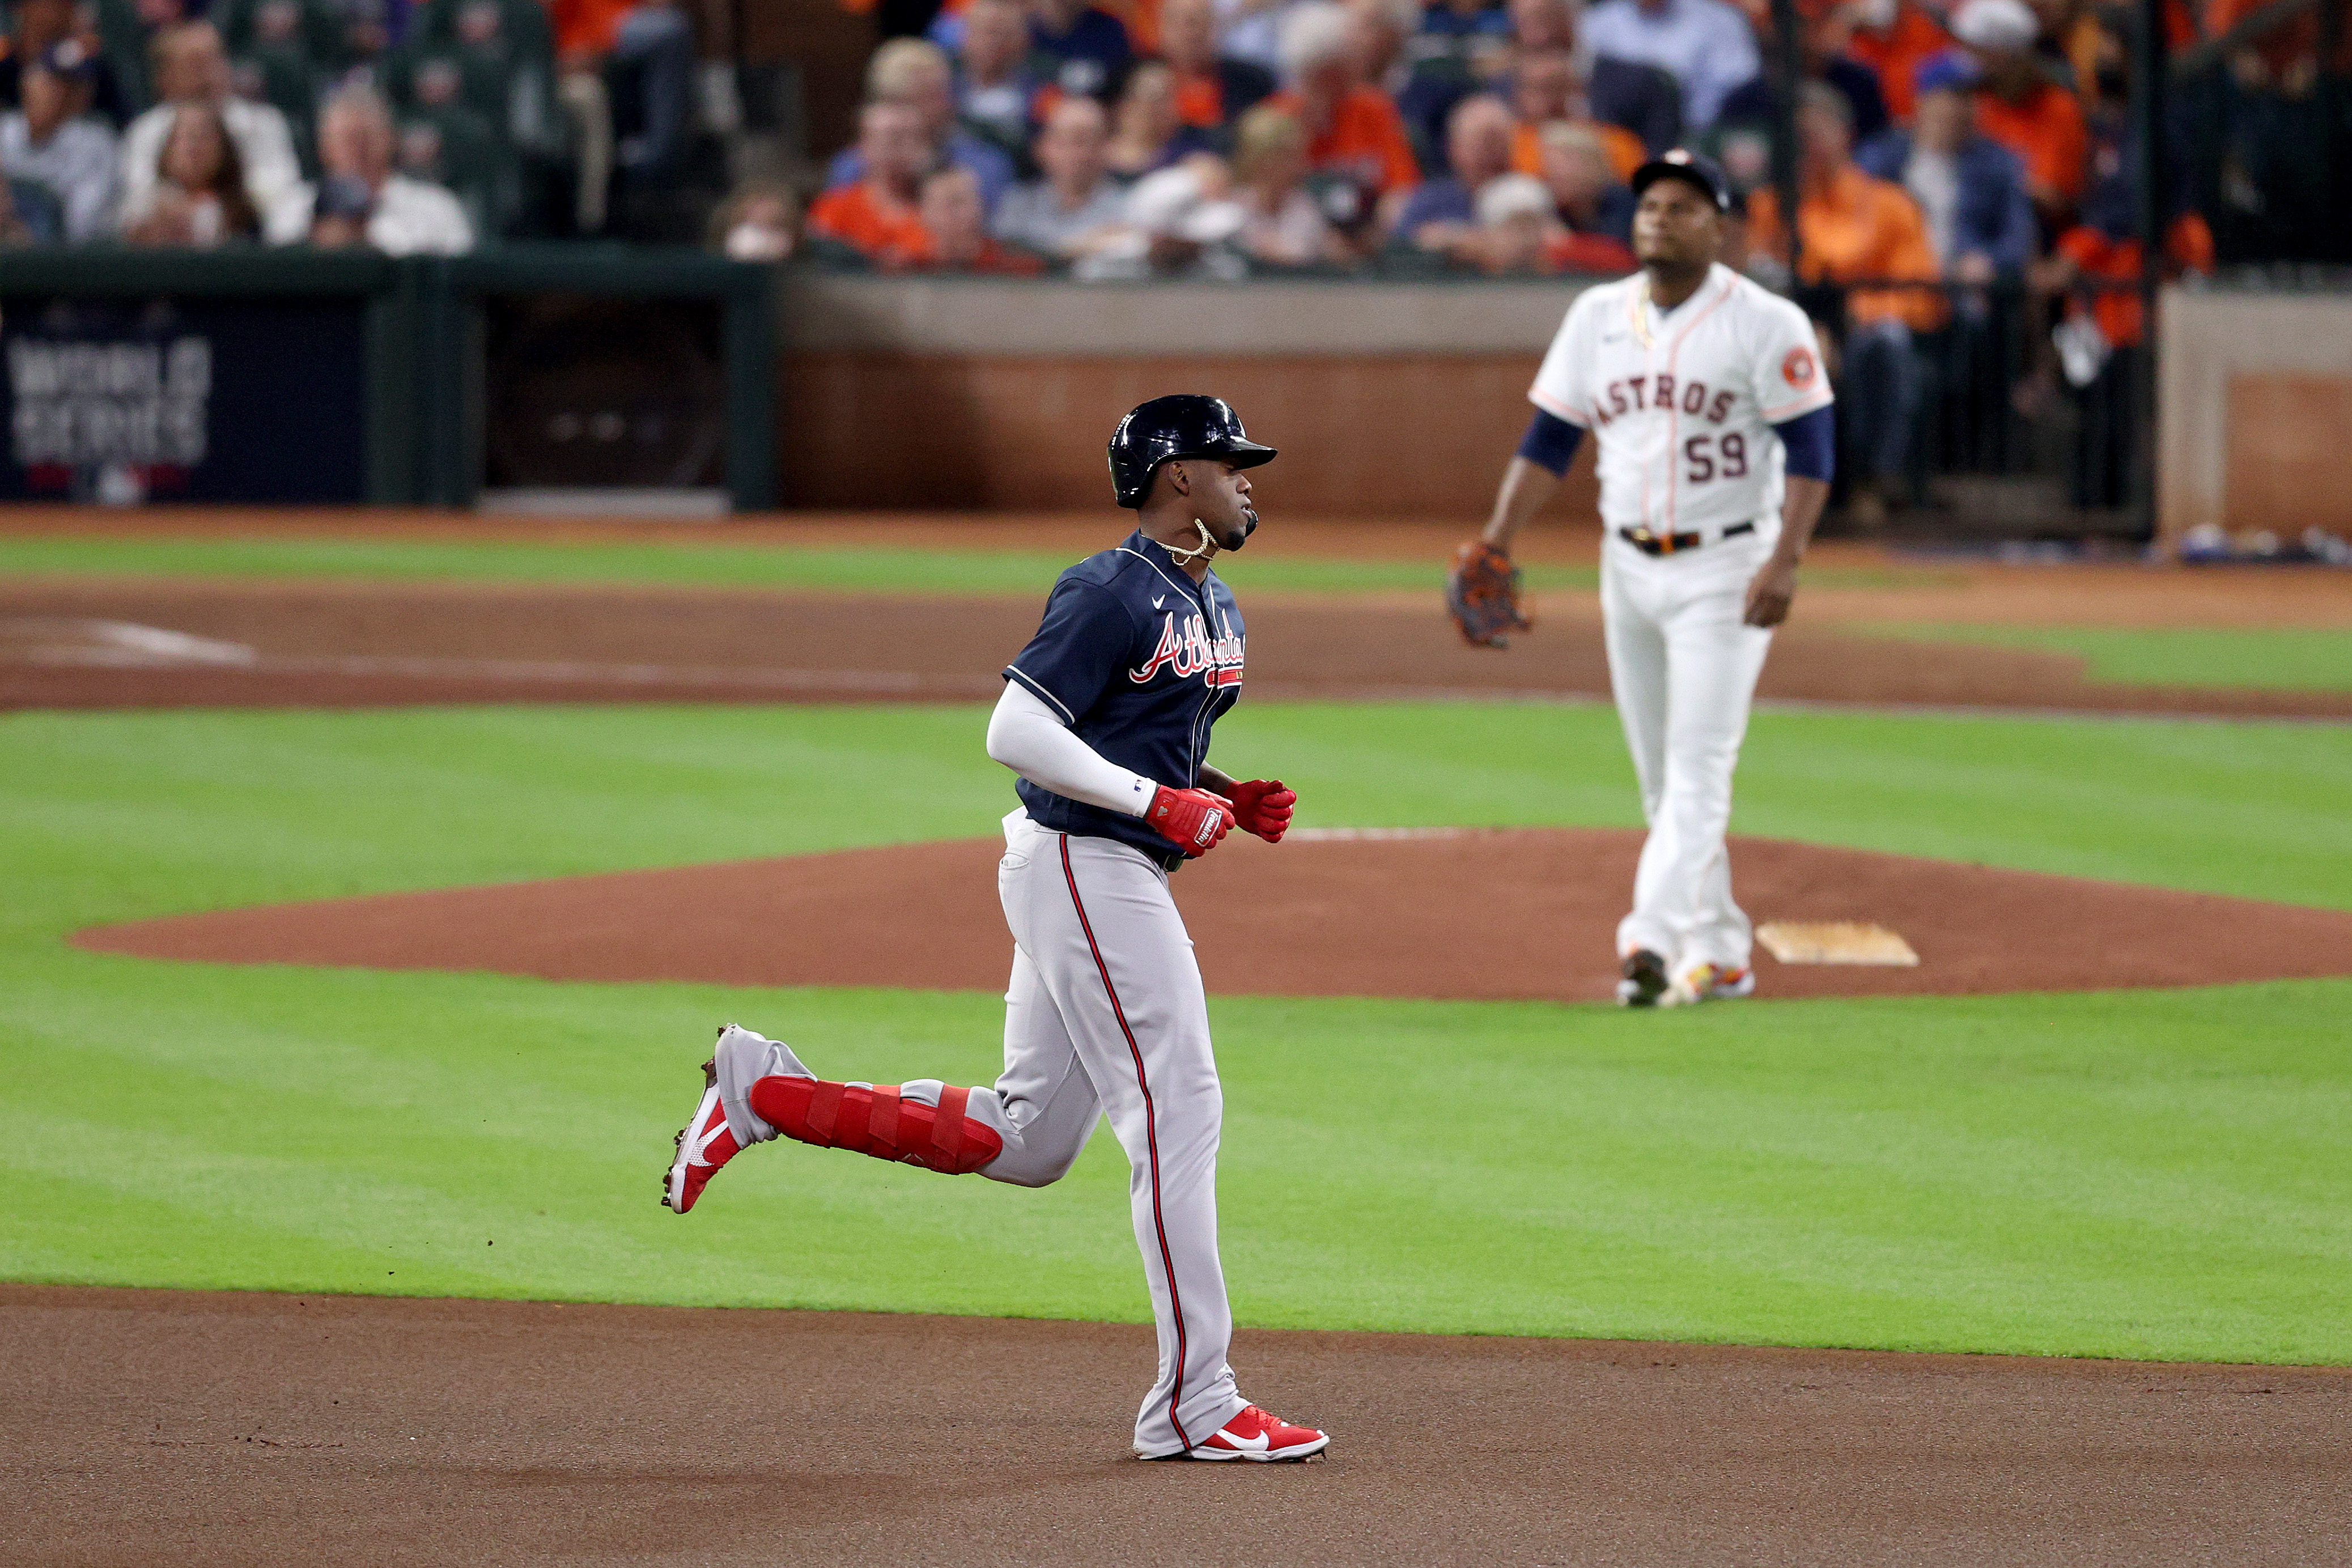 Jorge Soler #12 of the Atlanta Braves rounds the bases after hitting a solo home run against Framber Valdez #59 of the Houston Astros during the first inning in Game One of the World Series at Minute Maid Park on October 26, 2021 in Houston, Texas.